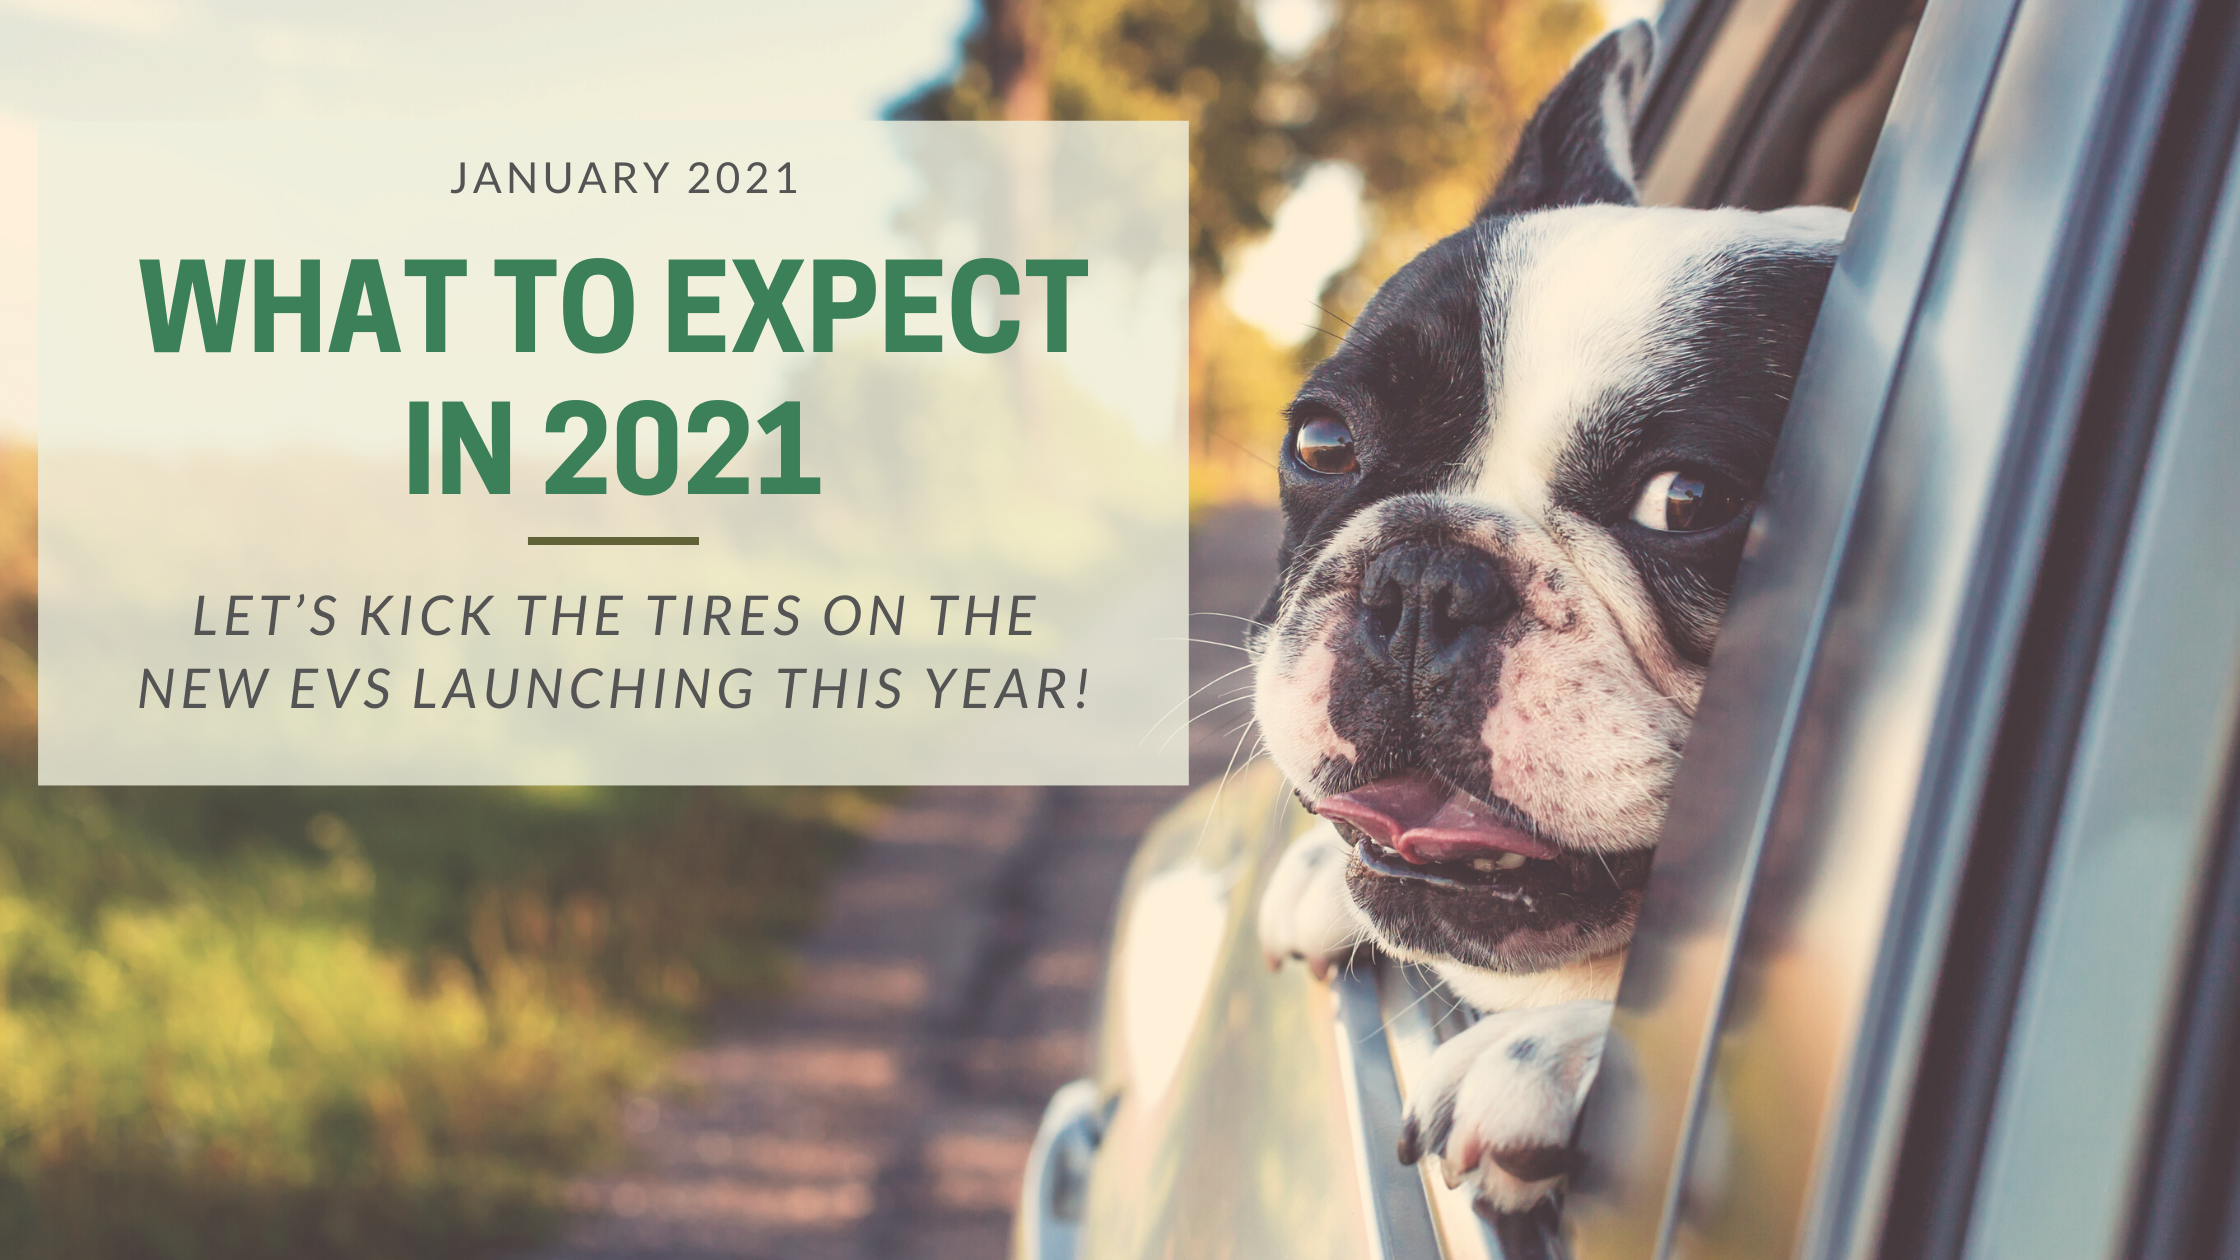 What to Expect In 2021: Let's Kick the Tires on the New EVs Launching this Year!